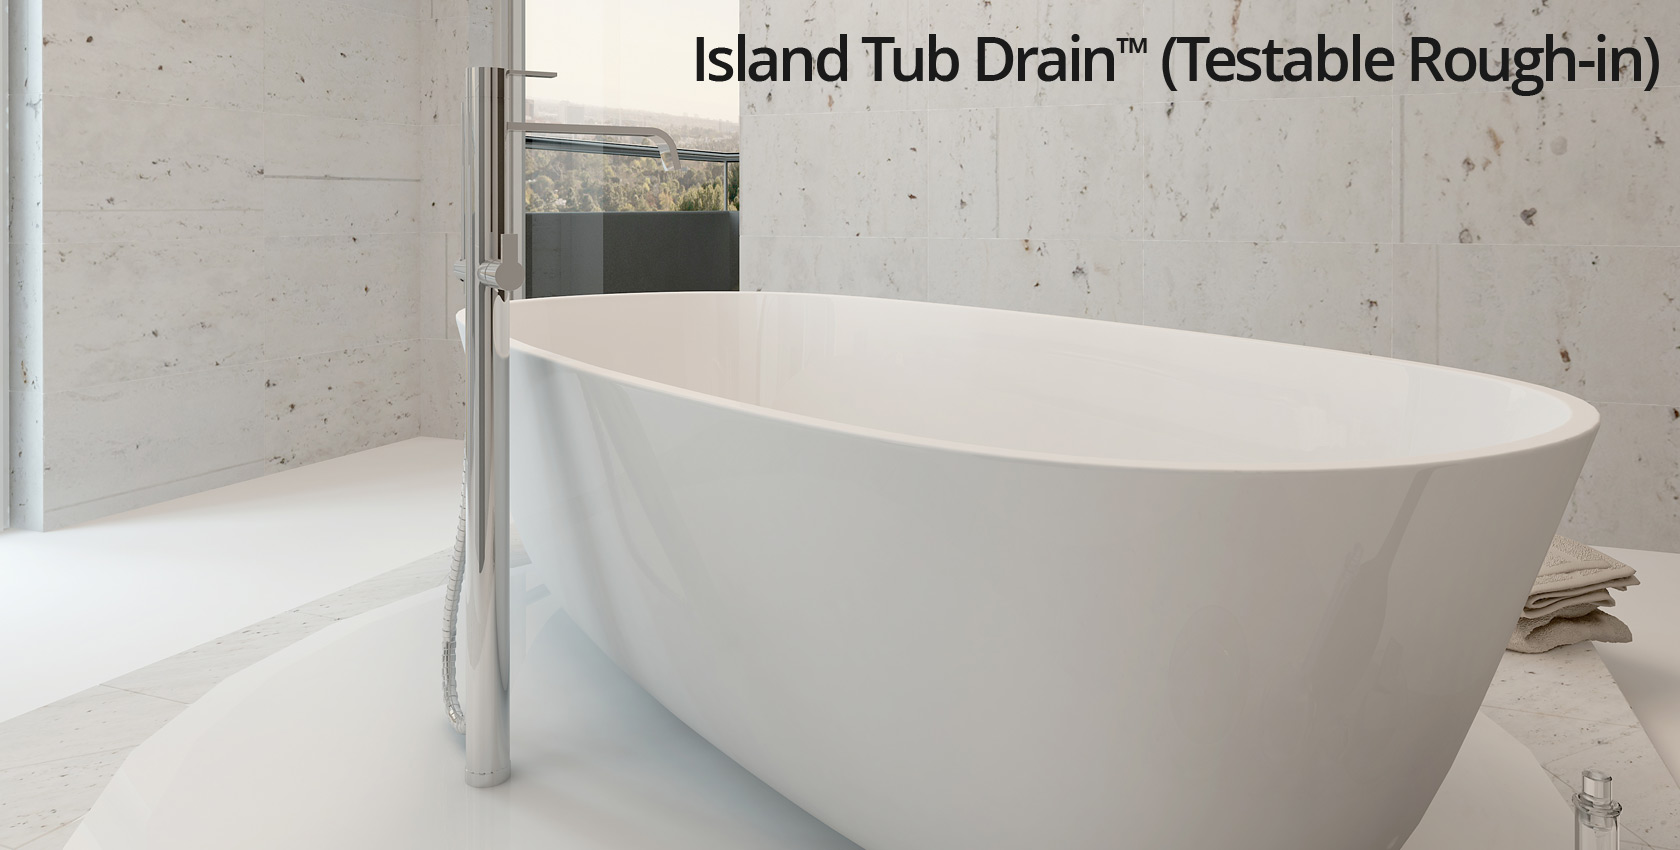 Island Tub Drain™ (Testable Rough-in)